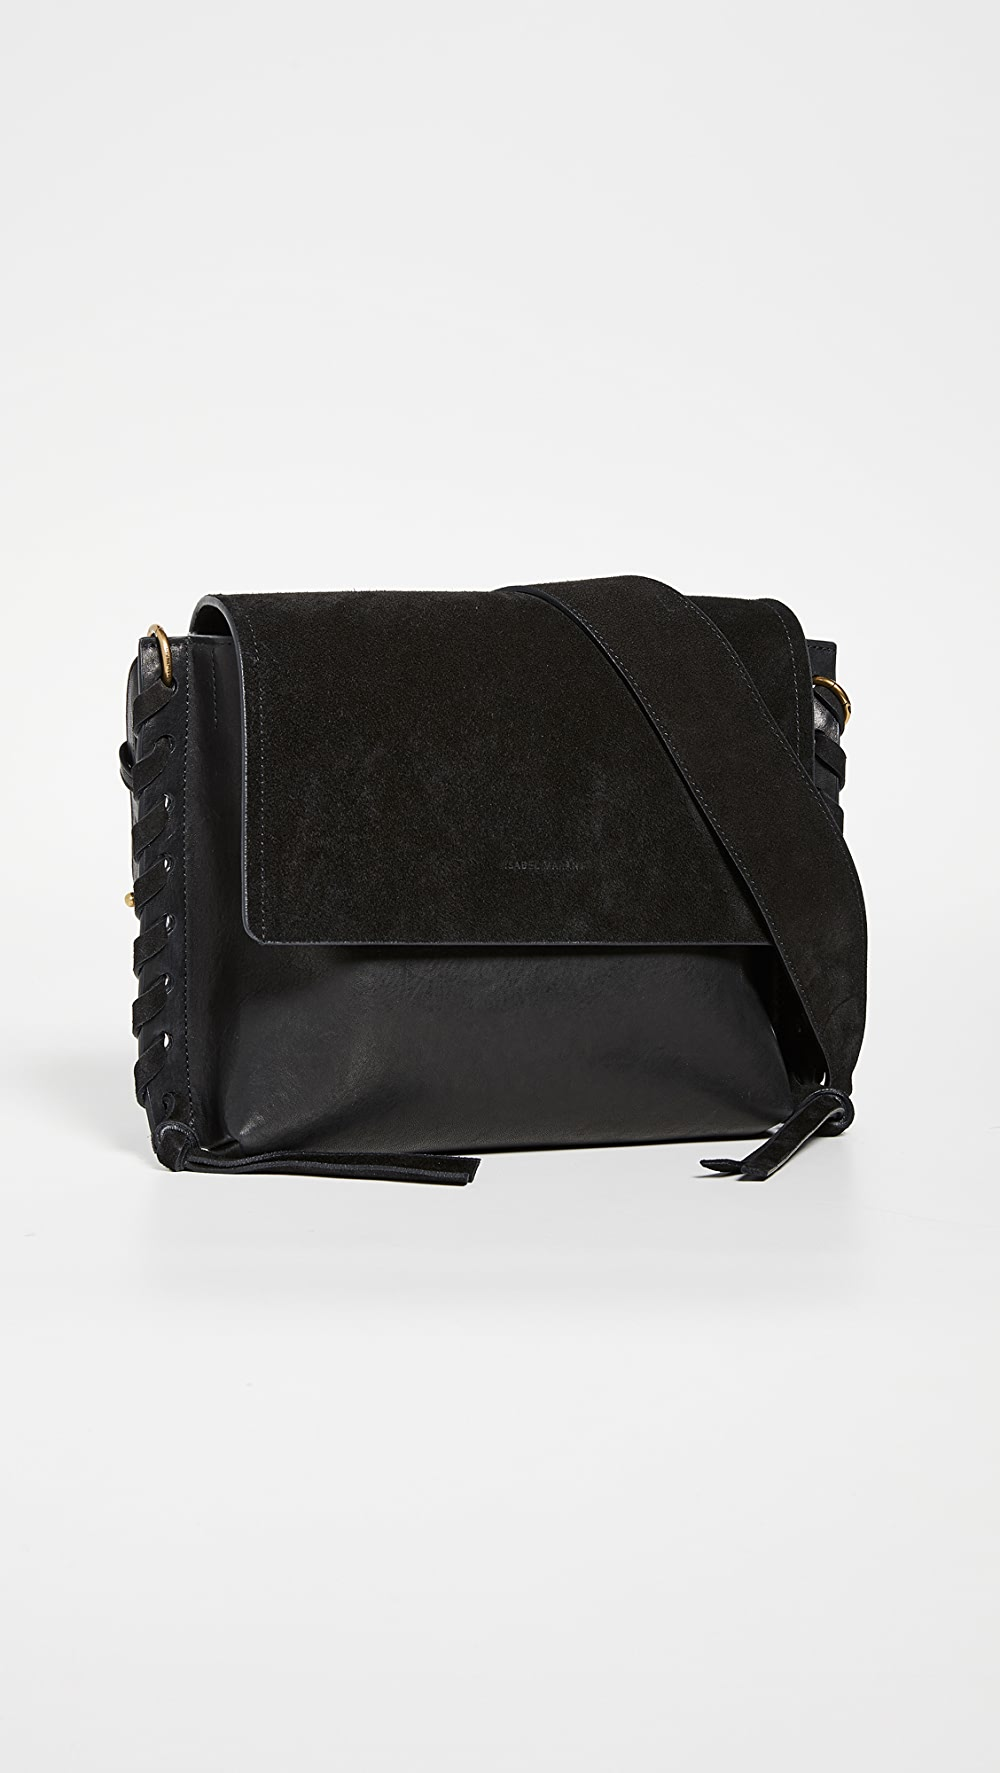 Active Isabel Marant - Asli Bag Preventing Hairs From Graying And Helpful To Retain Complexion